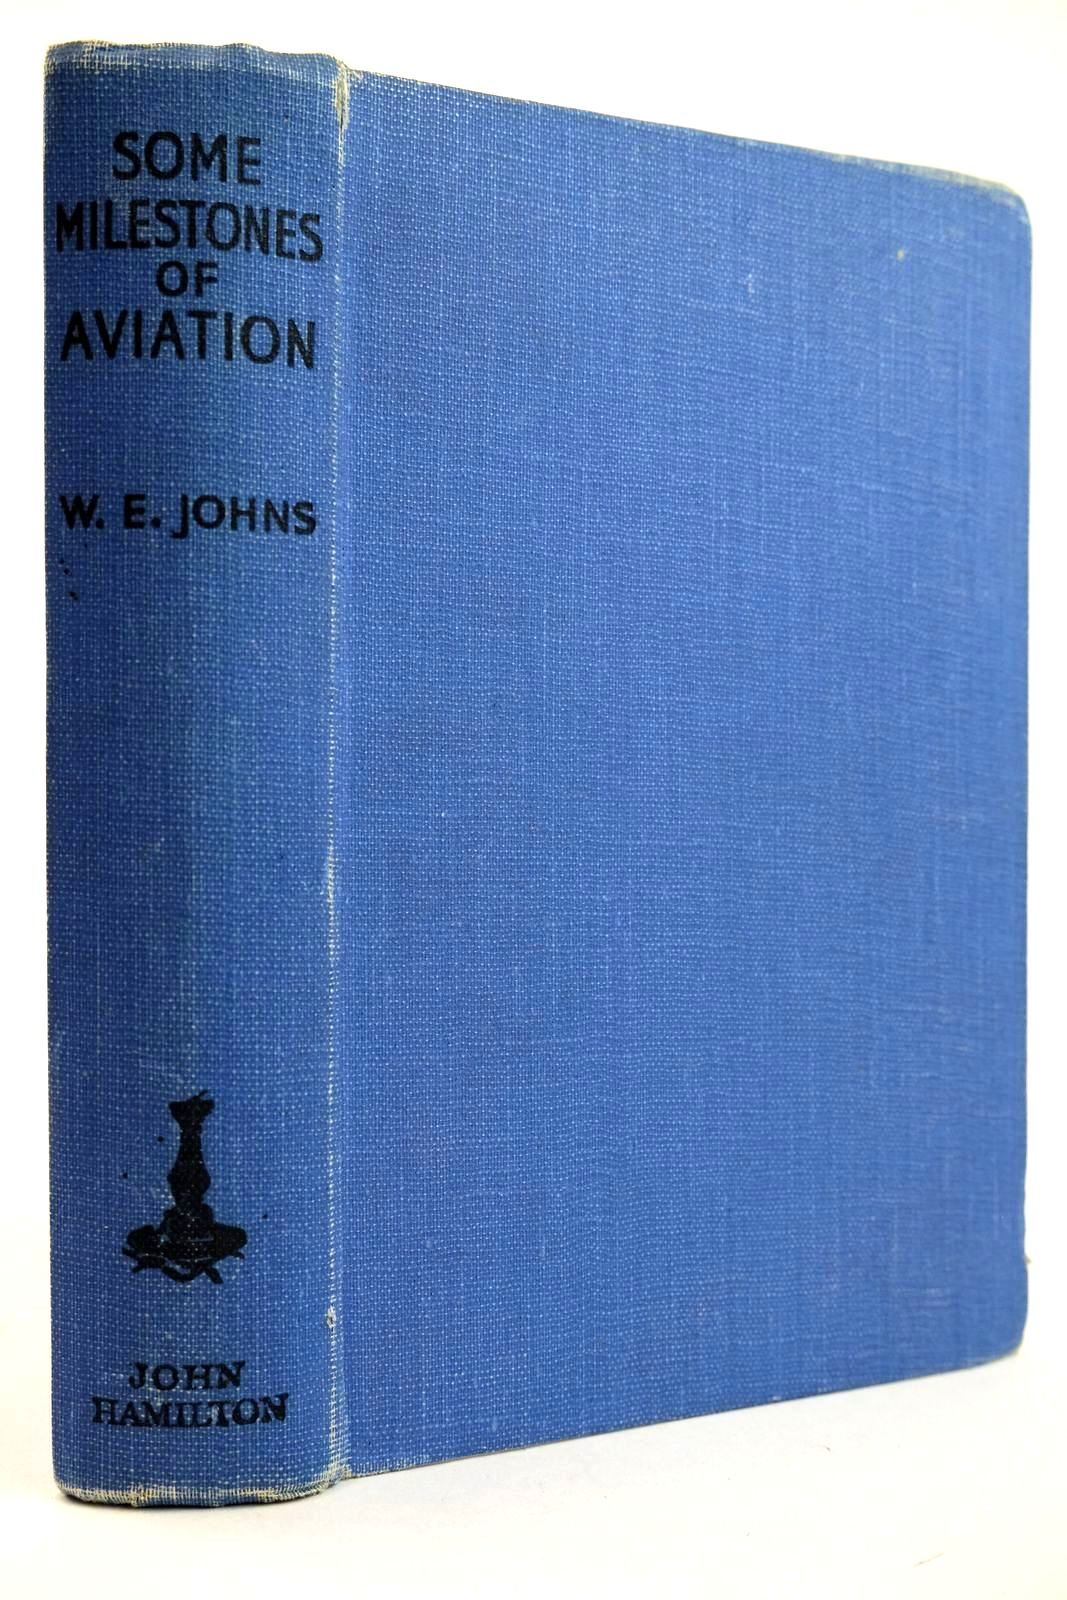 Photo of SOME MILESTONES IN AVIATION written by Johns, W.E. published by John Hamilton (STOCK CODE: 2132016)  for sale by Stella & Rose's Books